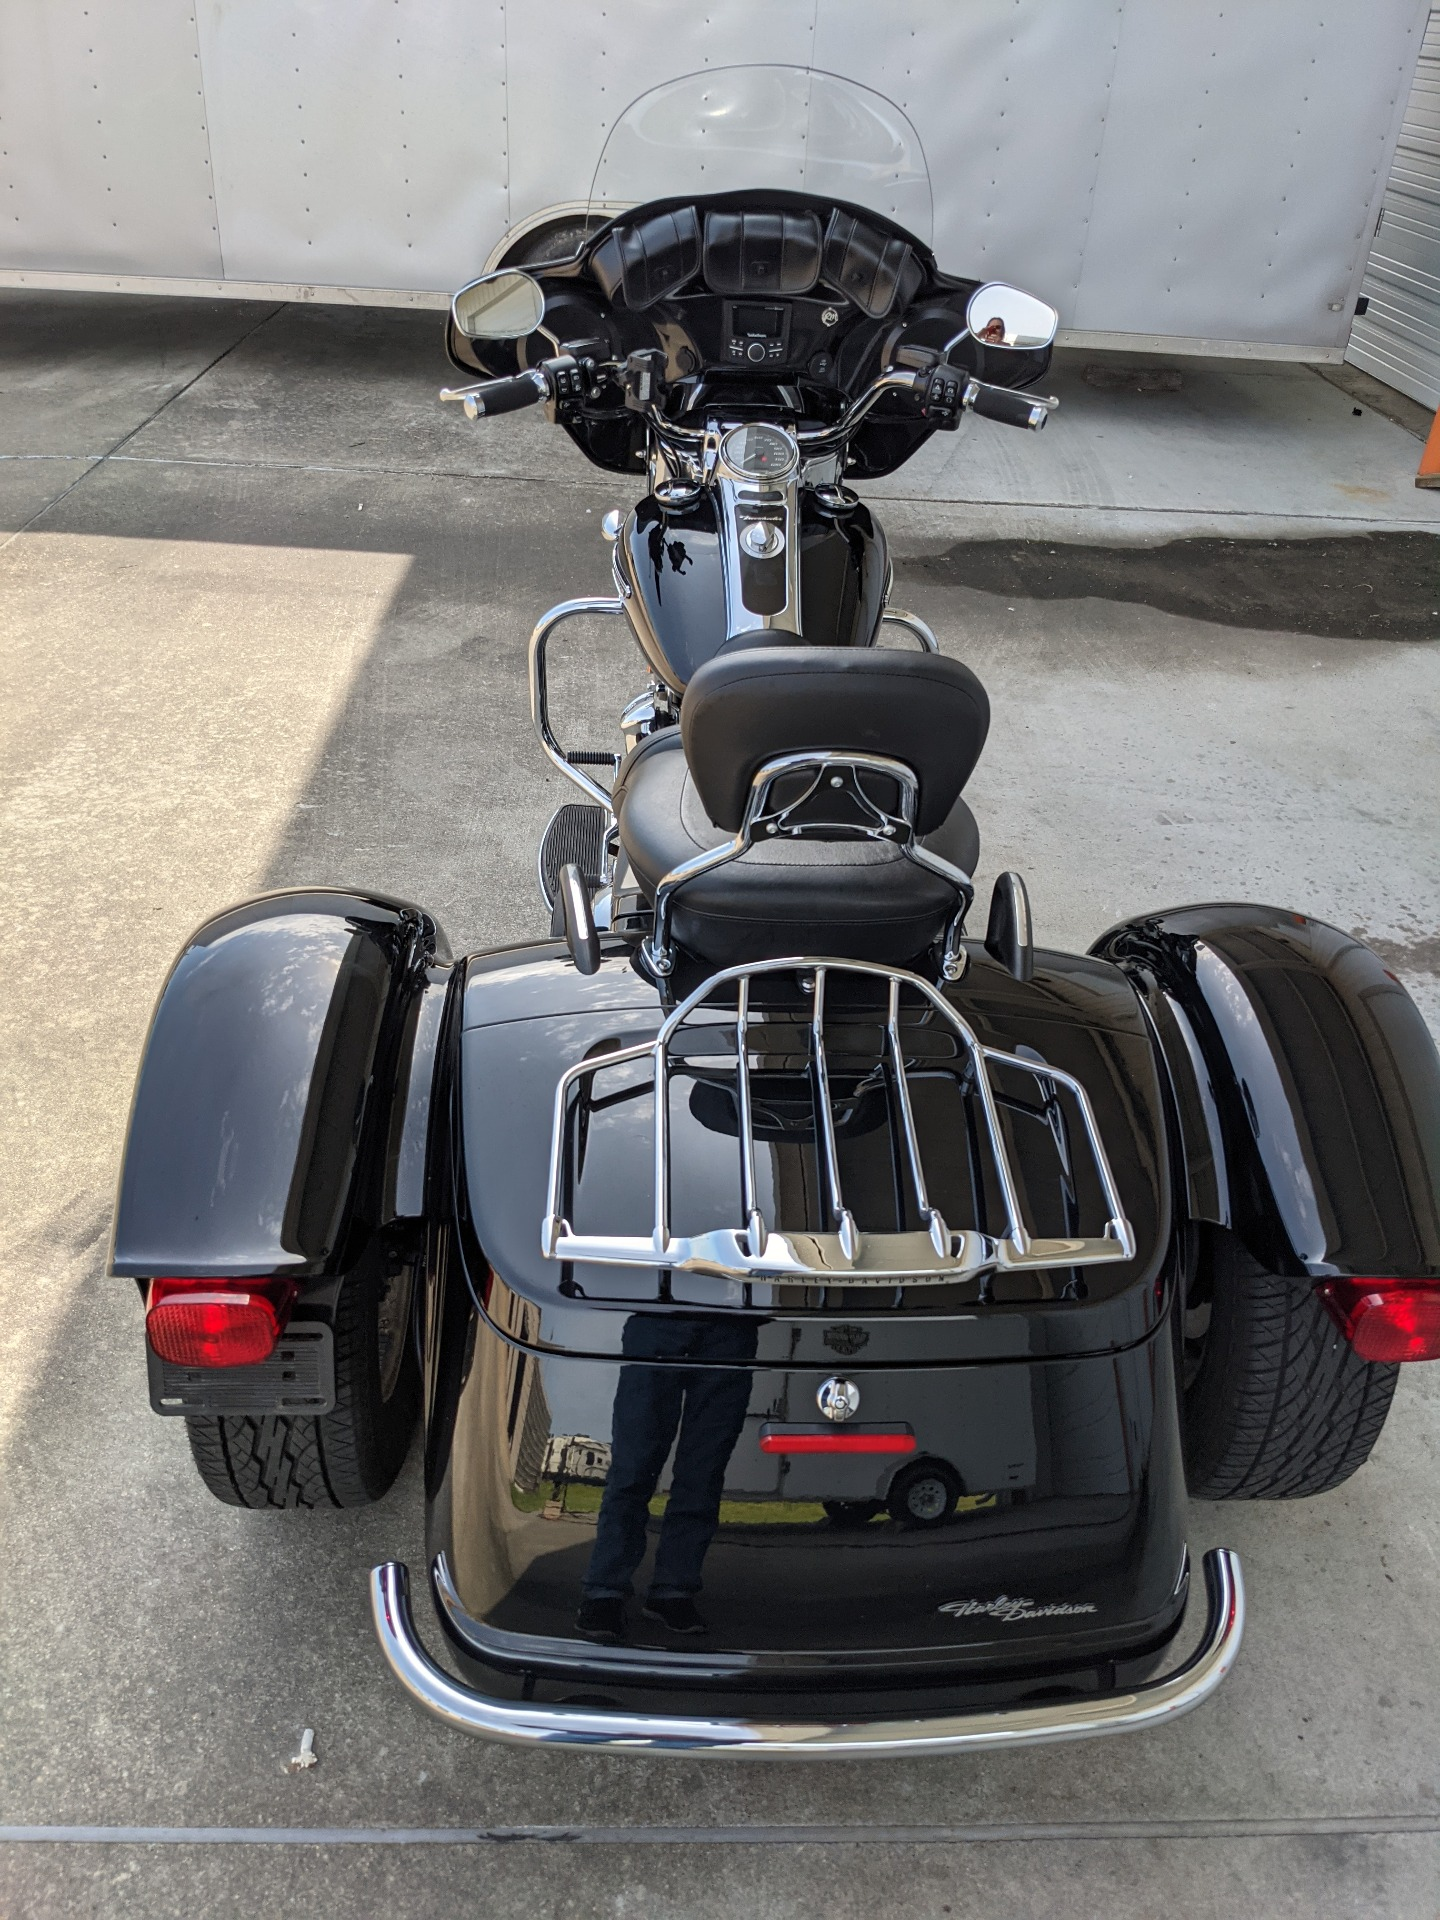 2019 Harley-Davidson Freewheeler Trike for sale - Photo 10